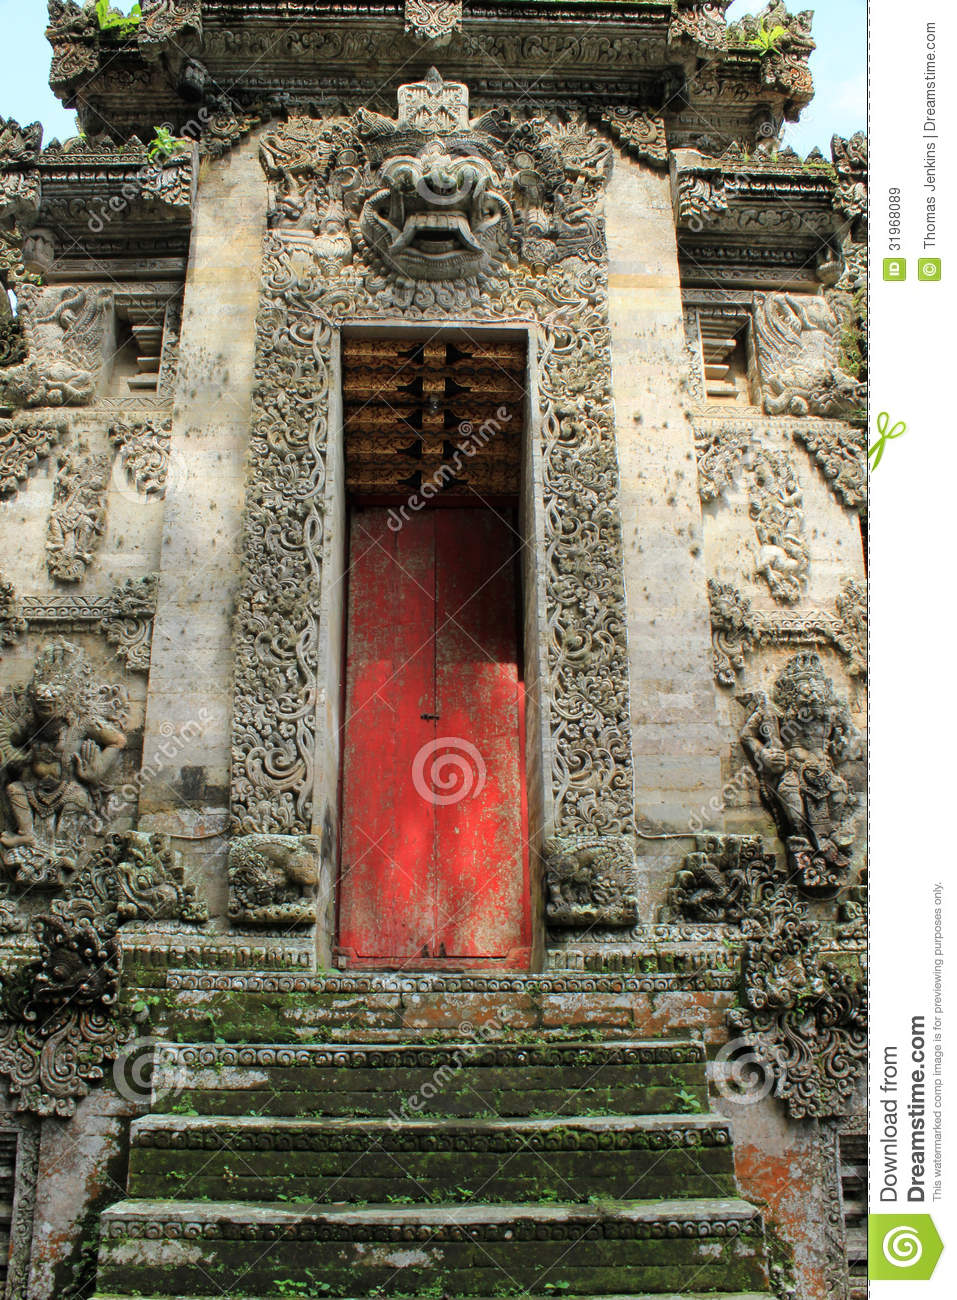 Decoratieve steeningang van pura kehen temple in bali royalty vrije stock afbeeldingen for Decor ingang